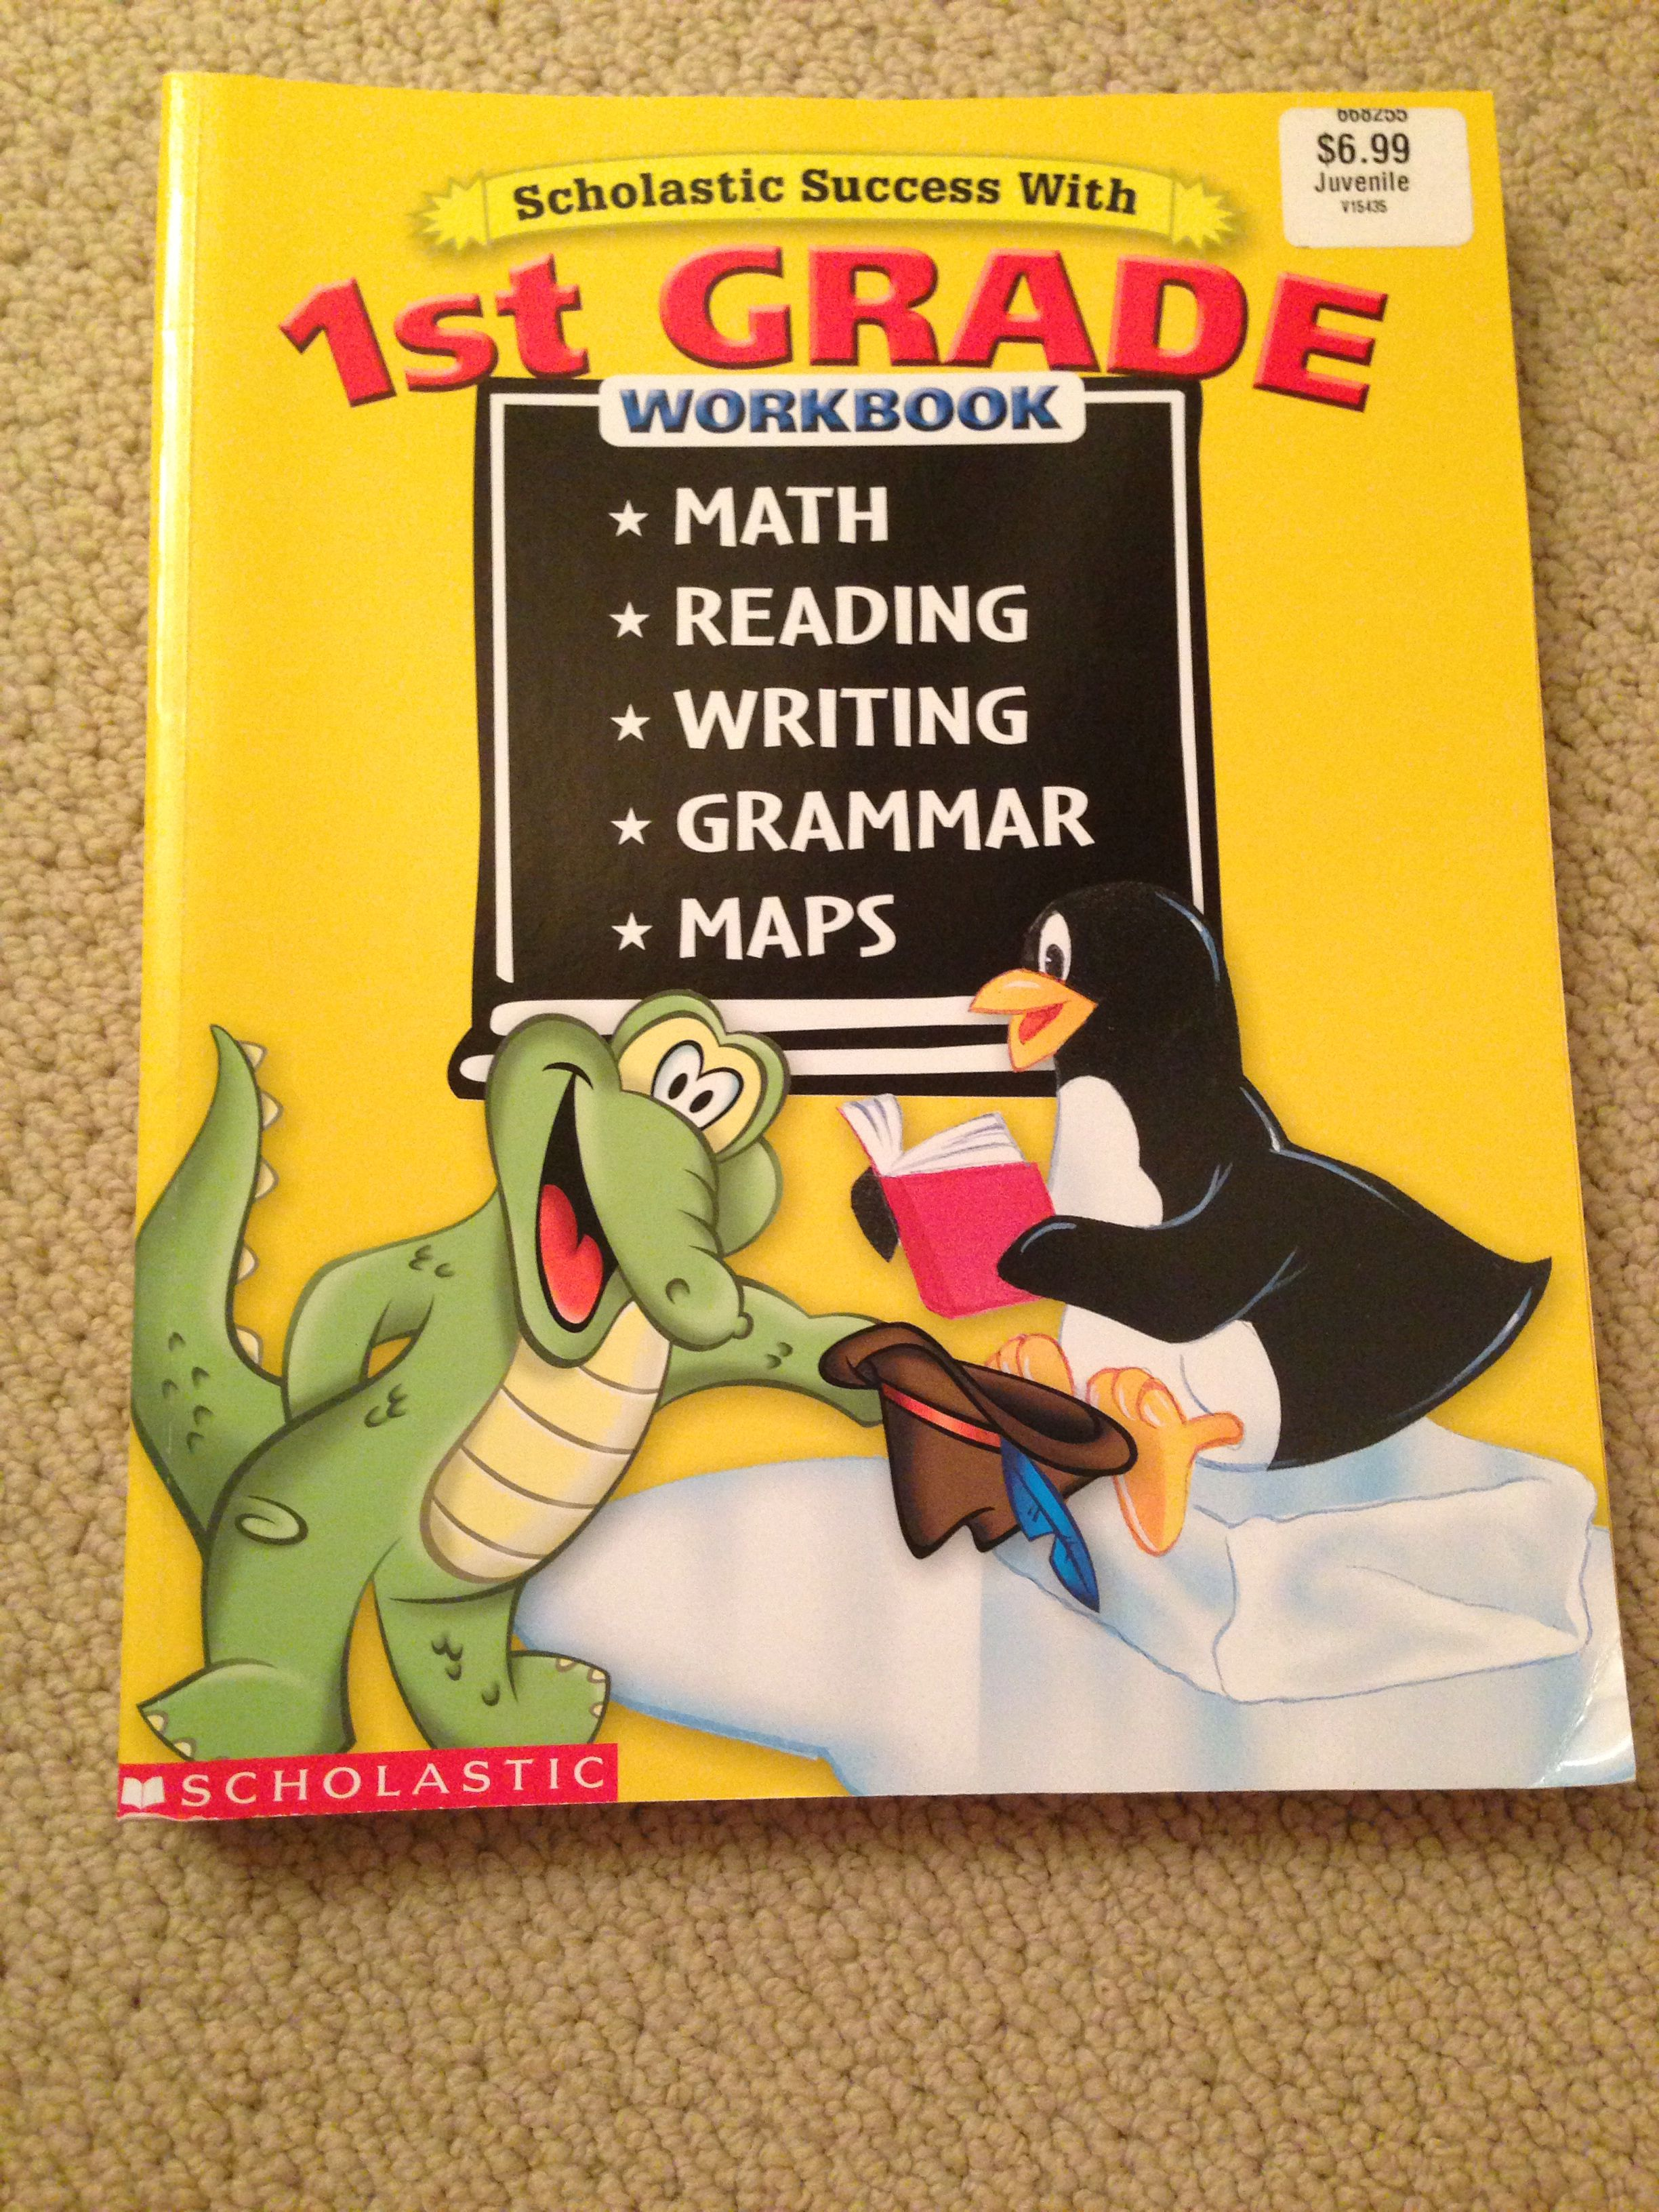 Scholastic Success With First Grade Workbook Curriculum All